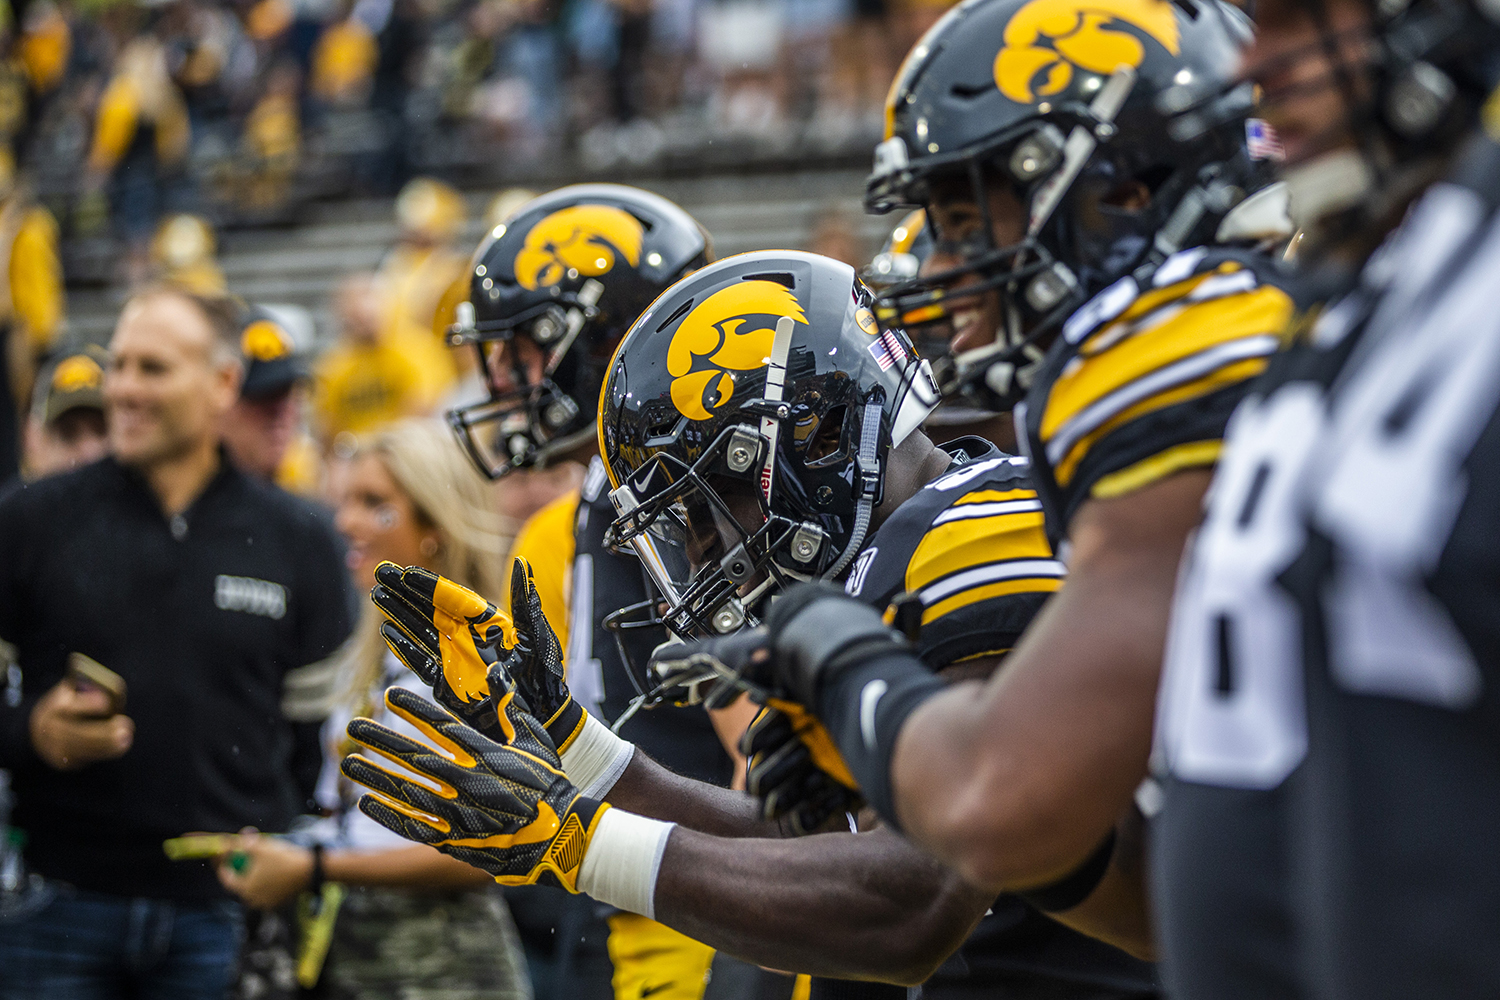 Iowa+players+cheer+during+the+football+game+against+Miami+%28Ohio%29+at+Kinnick+Stadium+on+Saturday%2C+August+31%2C+2019.+The+Hawkeyes+defeated+the+Redhawks+38-14.